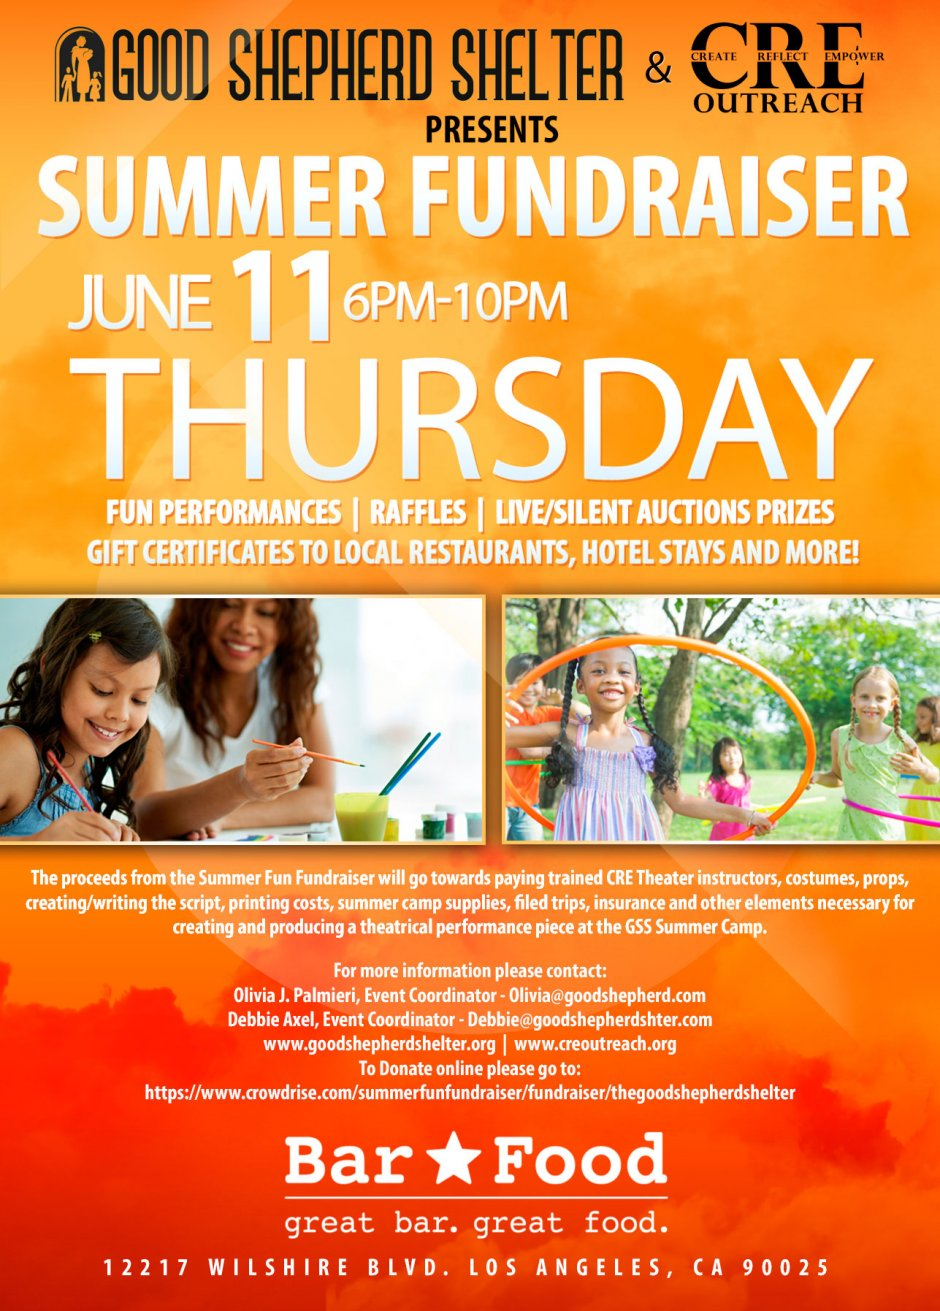 Summer fun fundraiser for the children at the good for Bar food 12217 wilshire blvd los angeles ca 90025